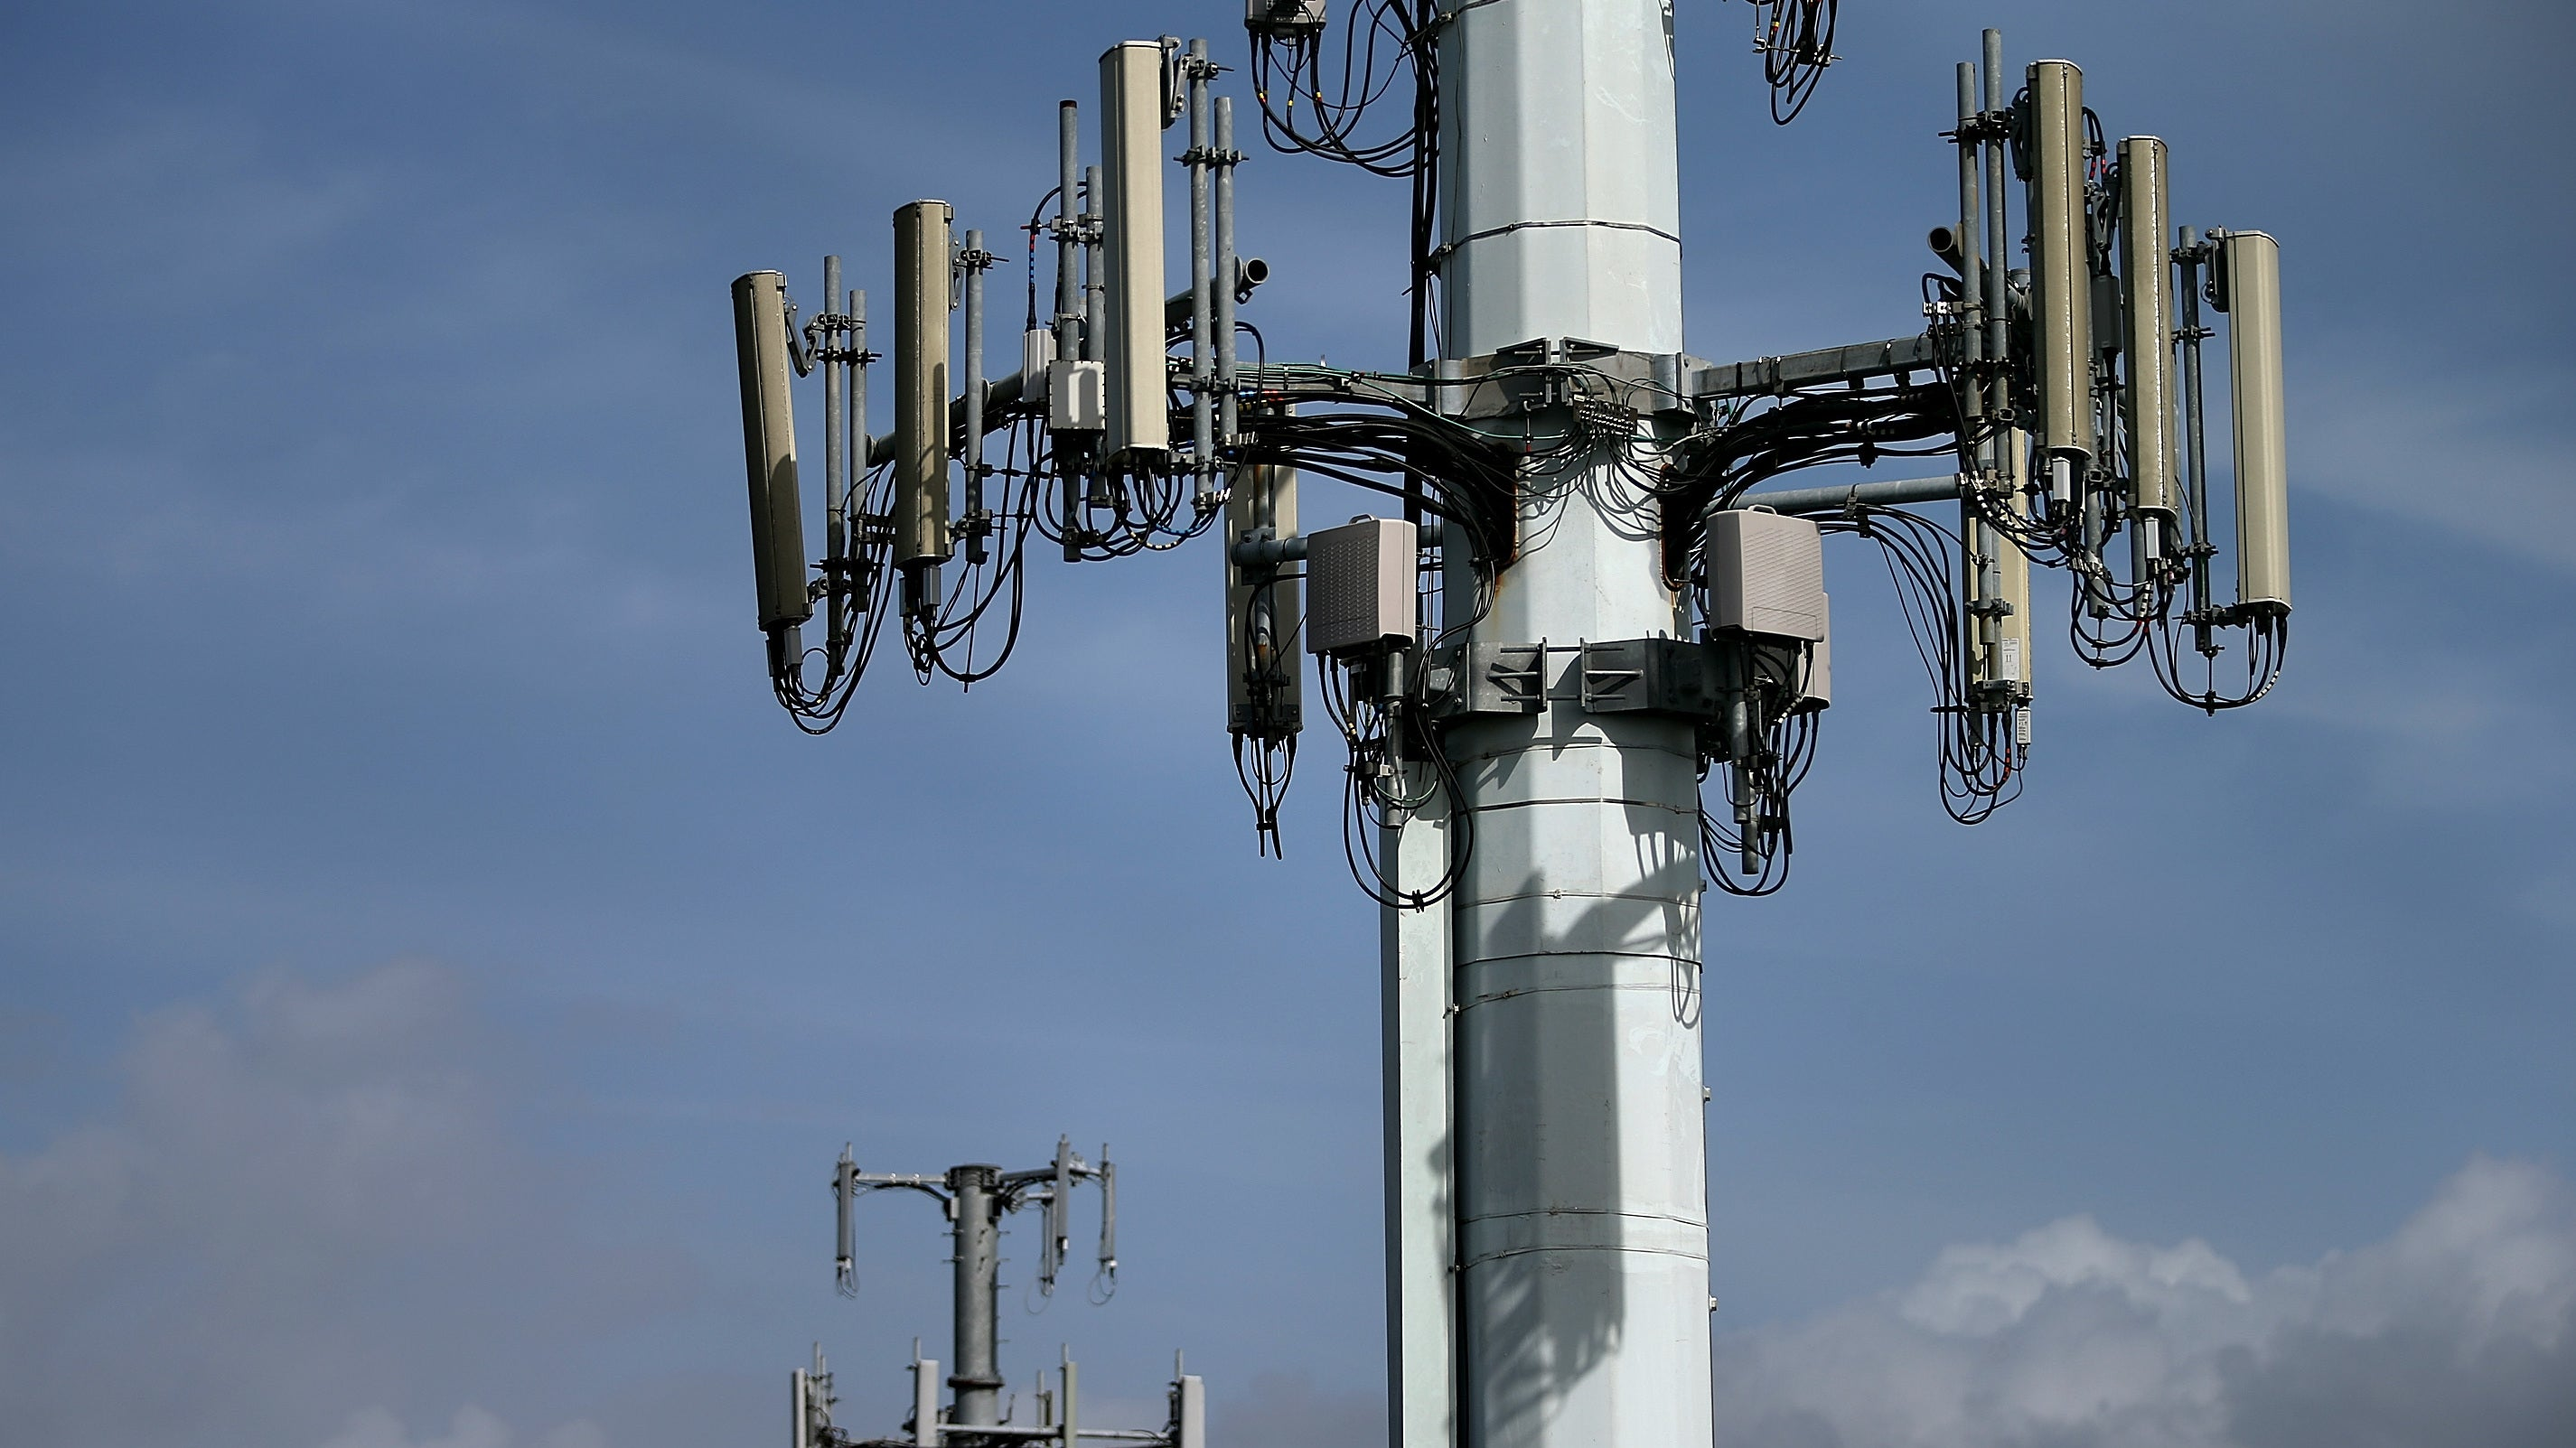 36 Undiscovered Flaws In 4G LTE Revealed By A New Security Tool